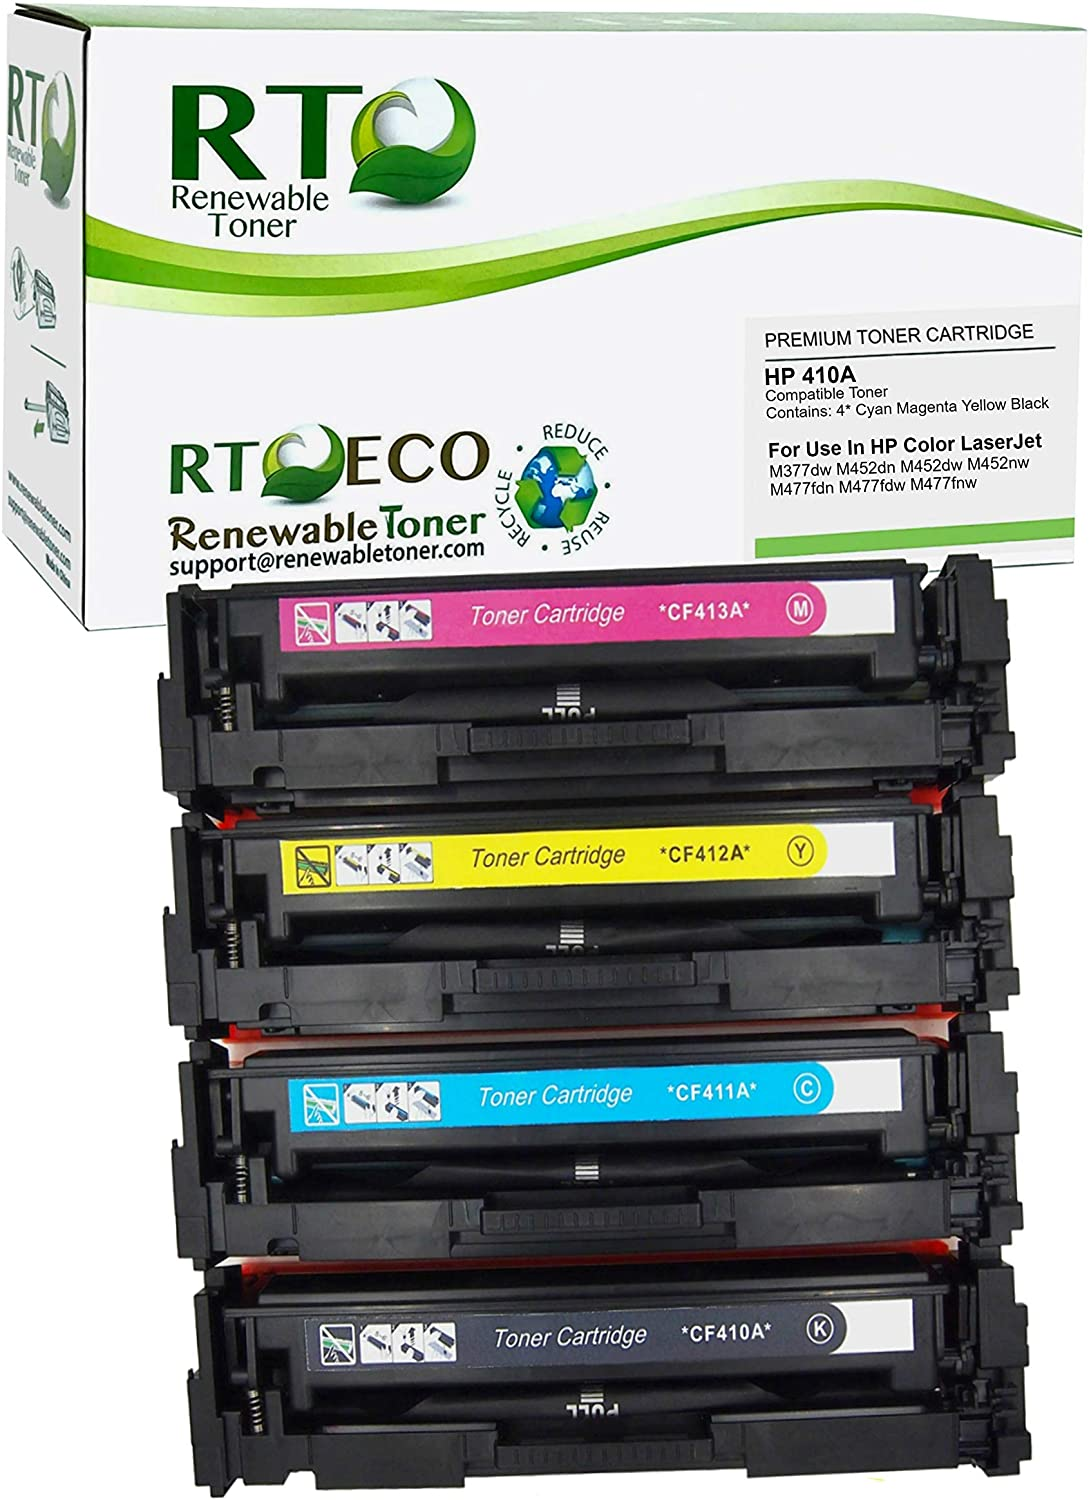 Renewable Toner Compatible Toner Cartridge Replacement for HP 410A CF410A CF411A CF412A CF413A for Laserjet M477 M452 M377 (Cyan, Magenta, Yellow, Black, 4-Pack)